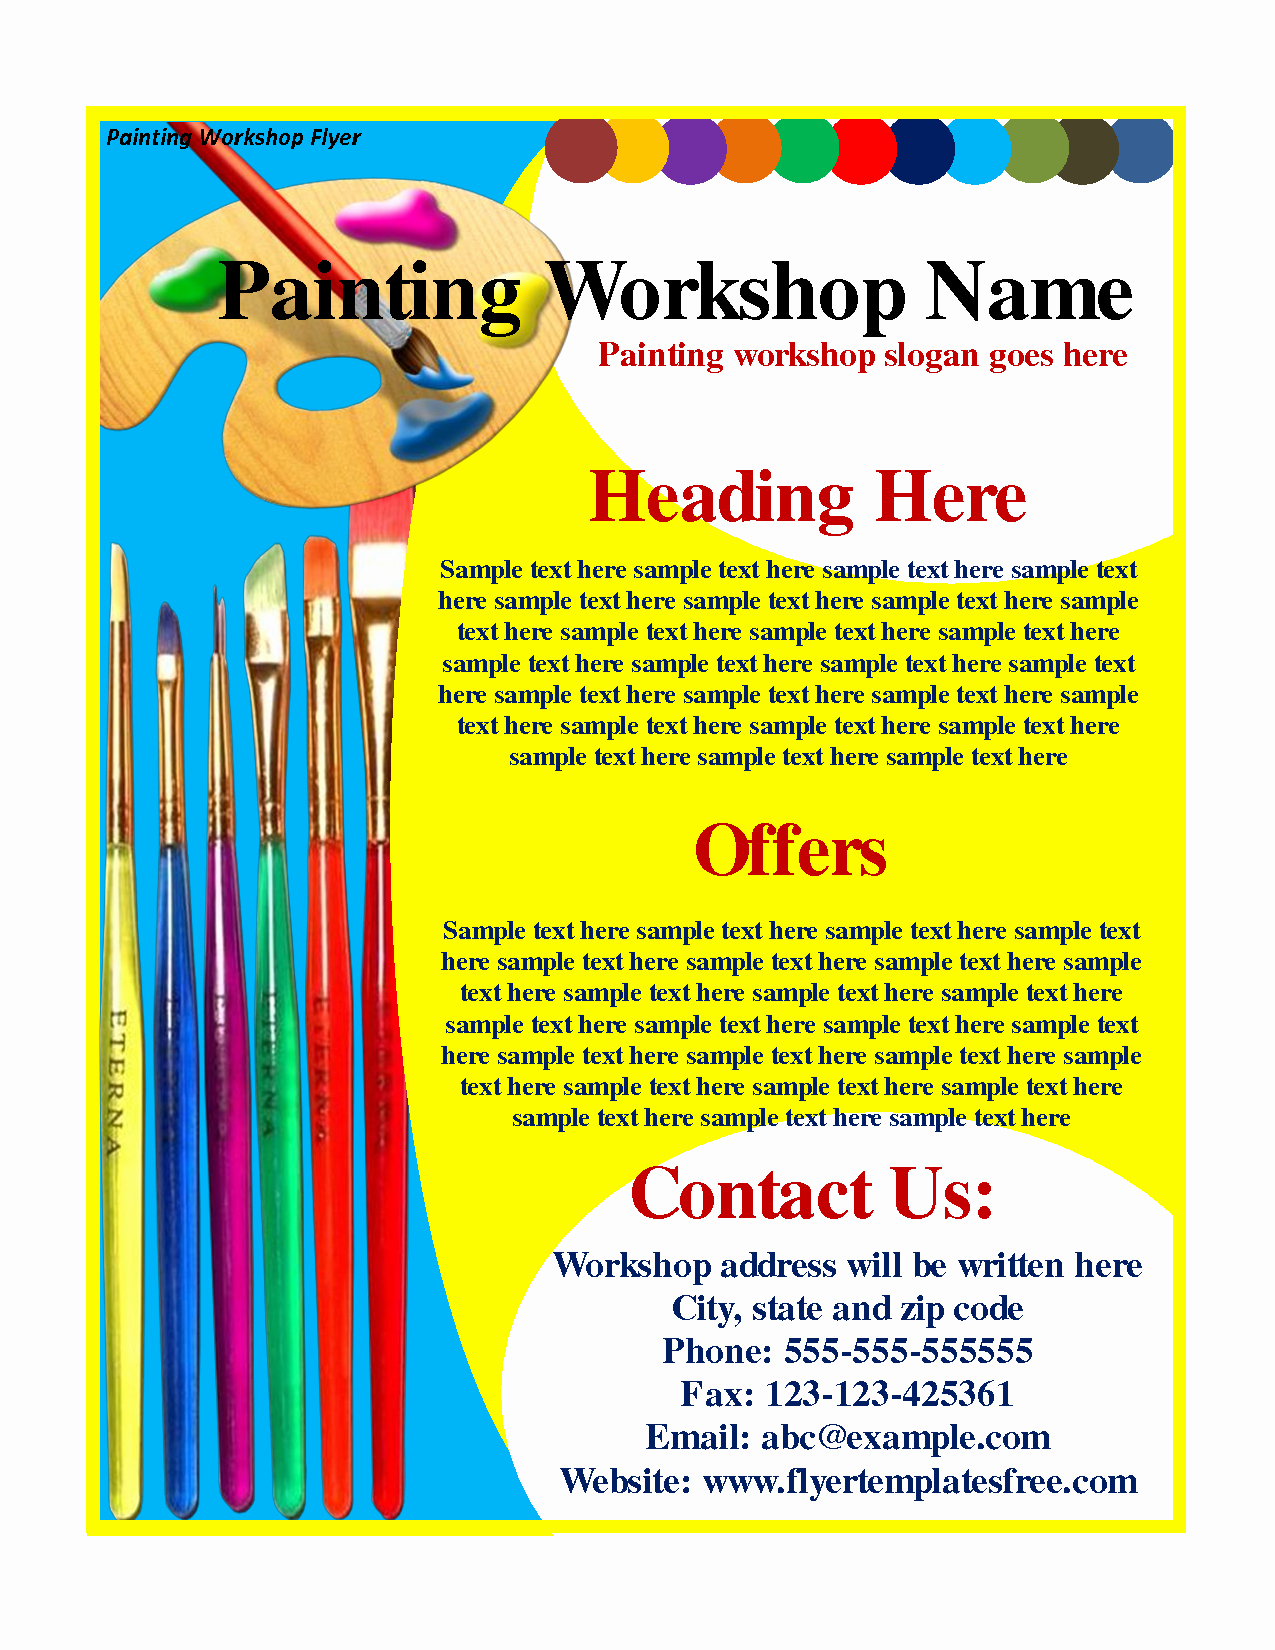 Painting Flyers Templates Free Awesome Flyer Design Gallery Category Page 4 Designtos